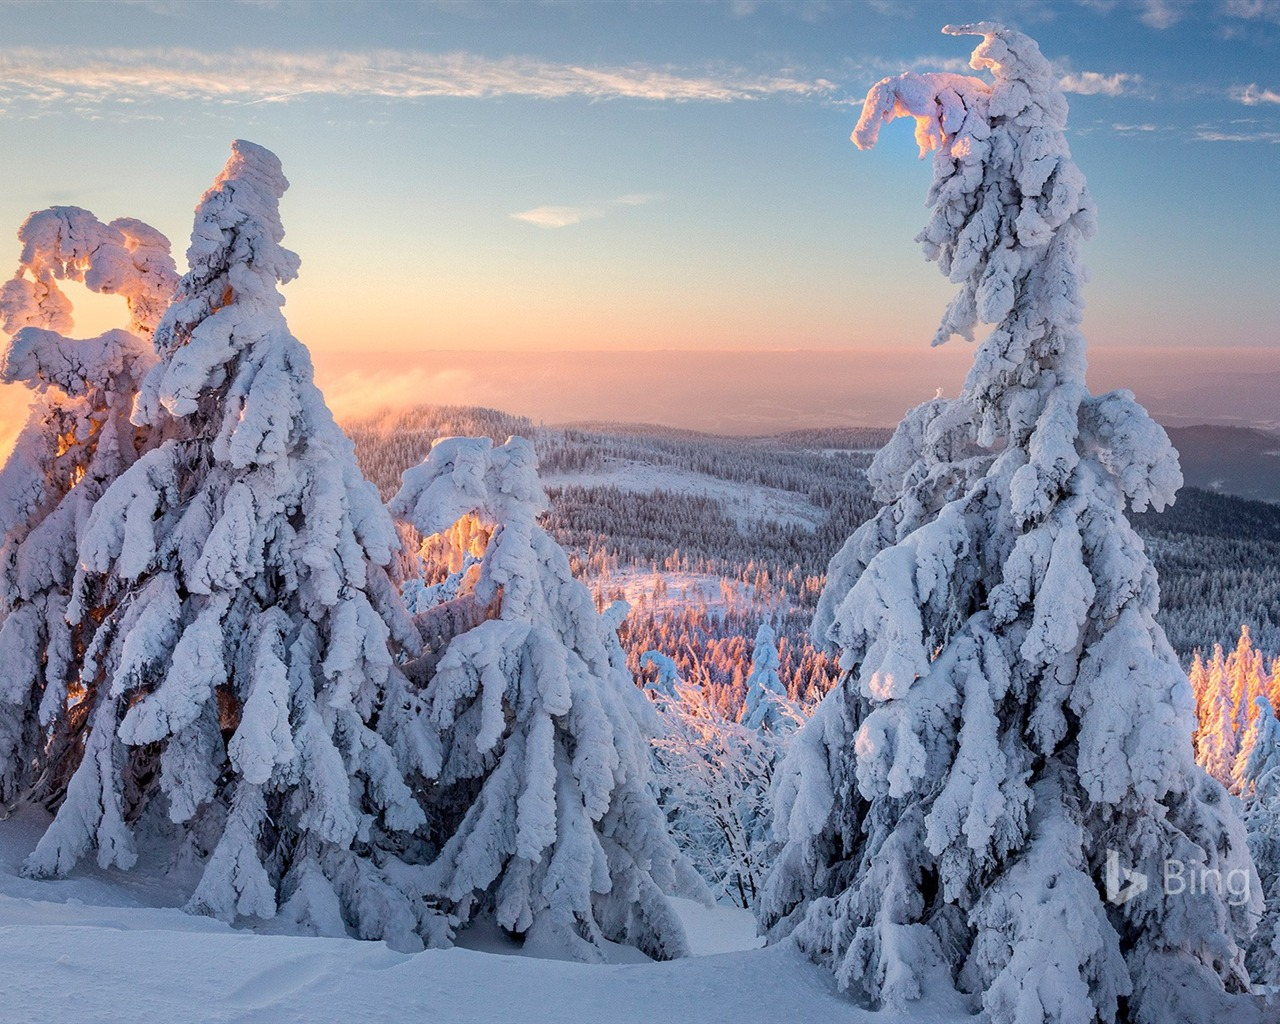 Fashion Wallpaper Iphone X Germany Bavaria Winter Forest Morning 2018 Bing Preview